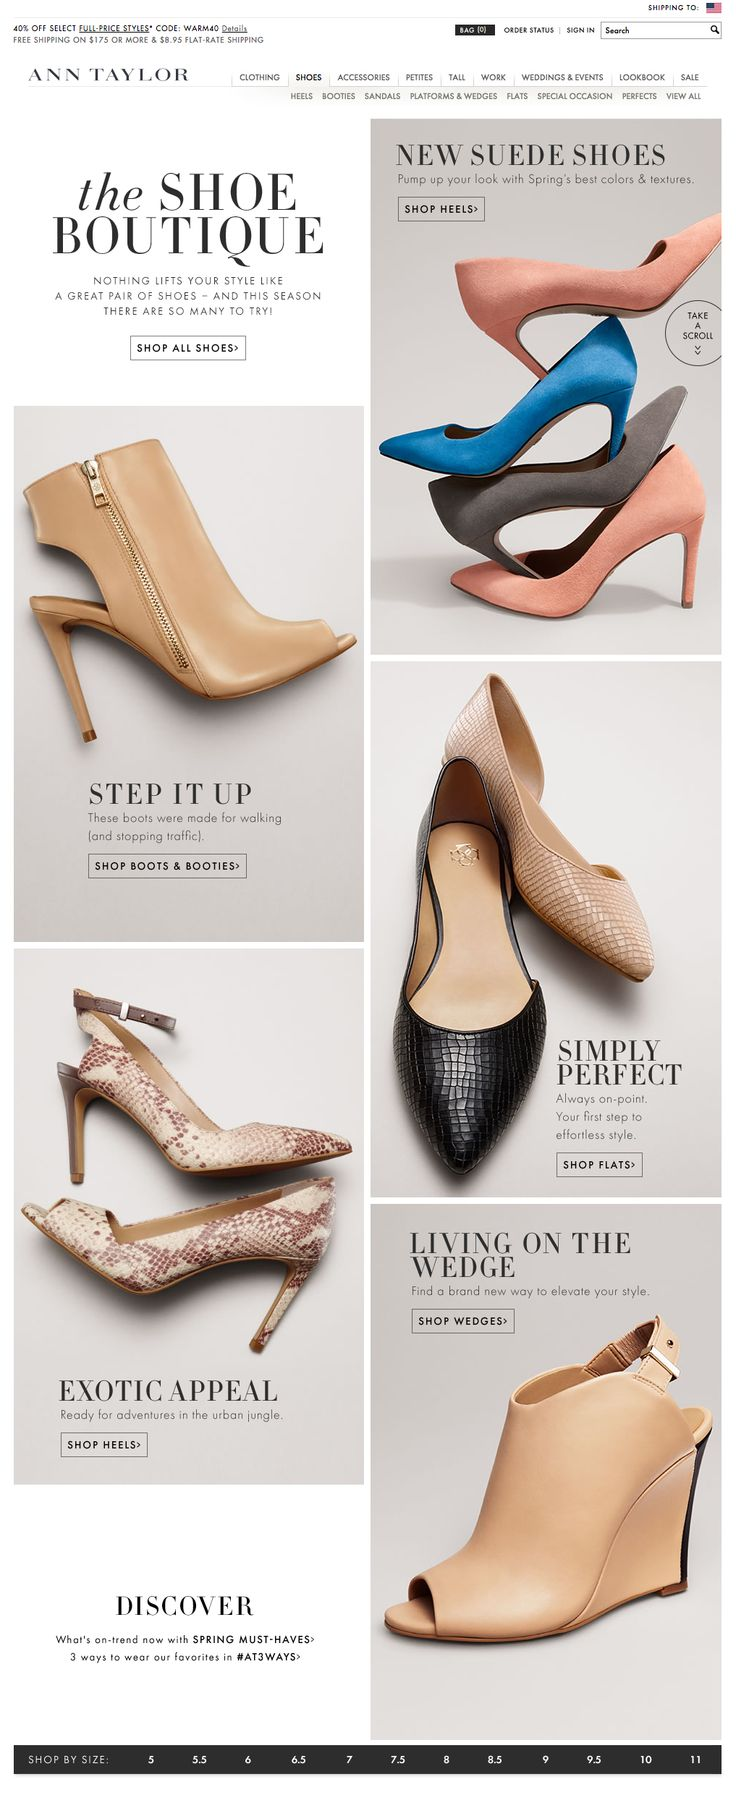 Shoes | Ann Taylor